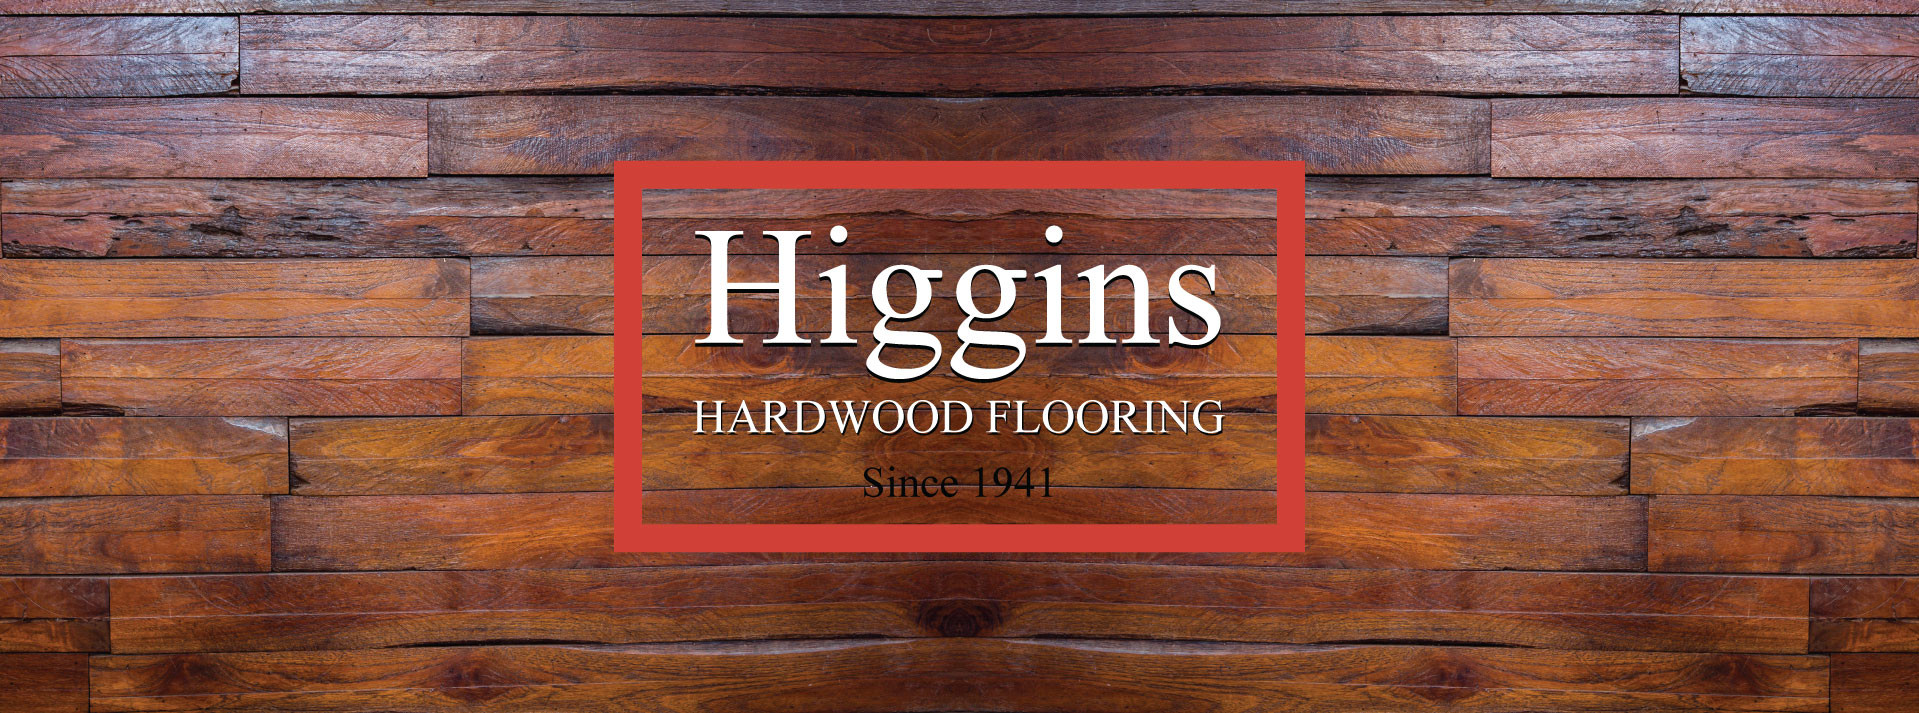 How to Fix Hardwood Floor Lifting Of Higgins Hardwood Flooring In Peterborough Oshawa Lindsay Ajax Inside Office Hours